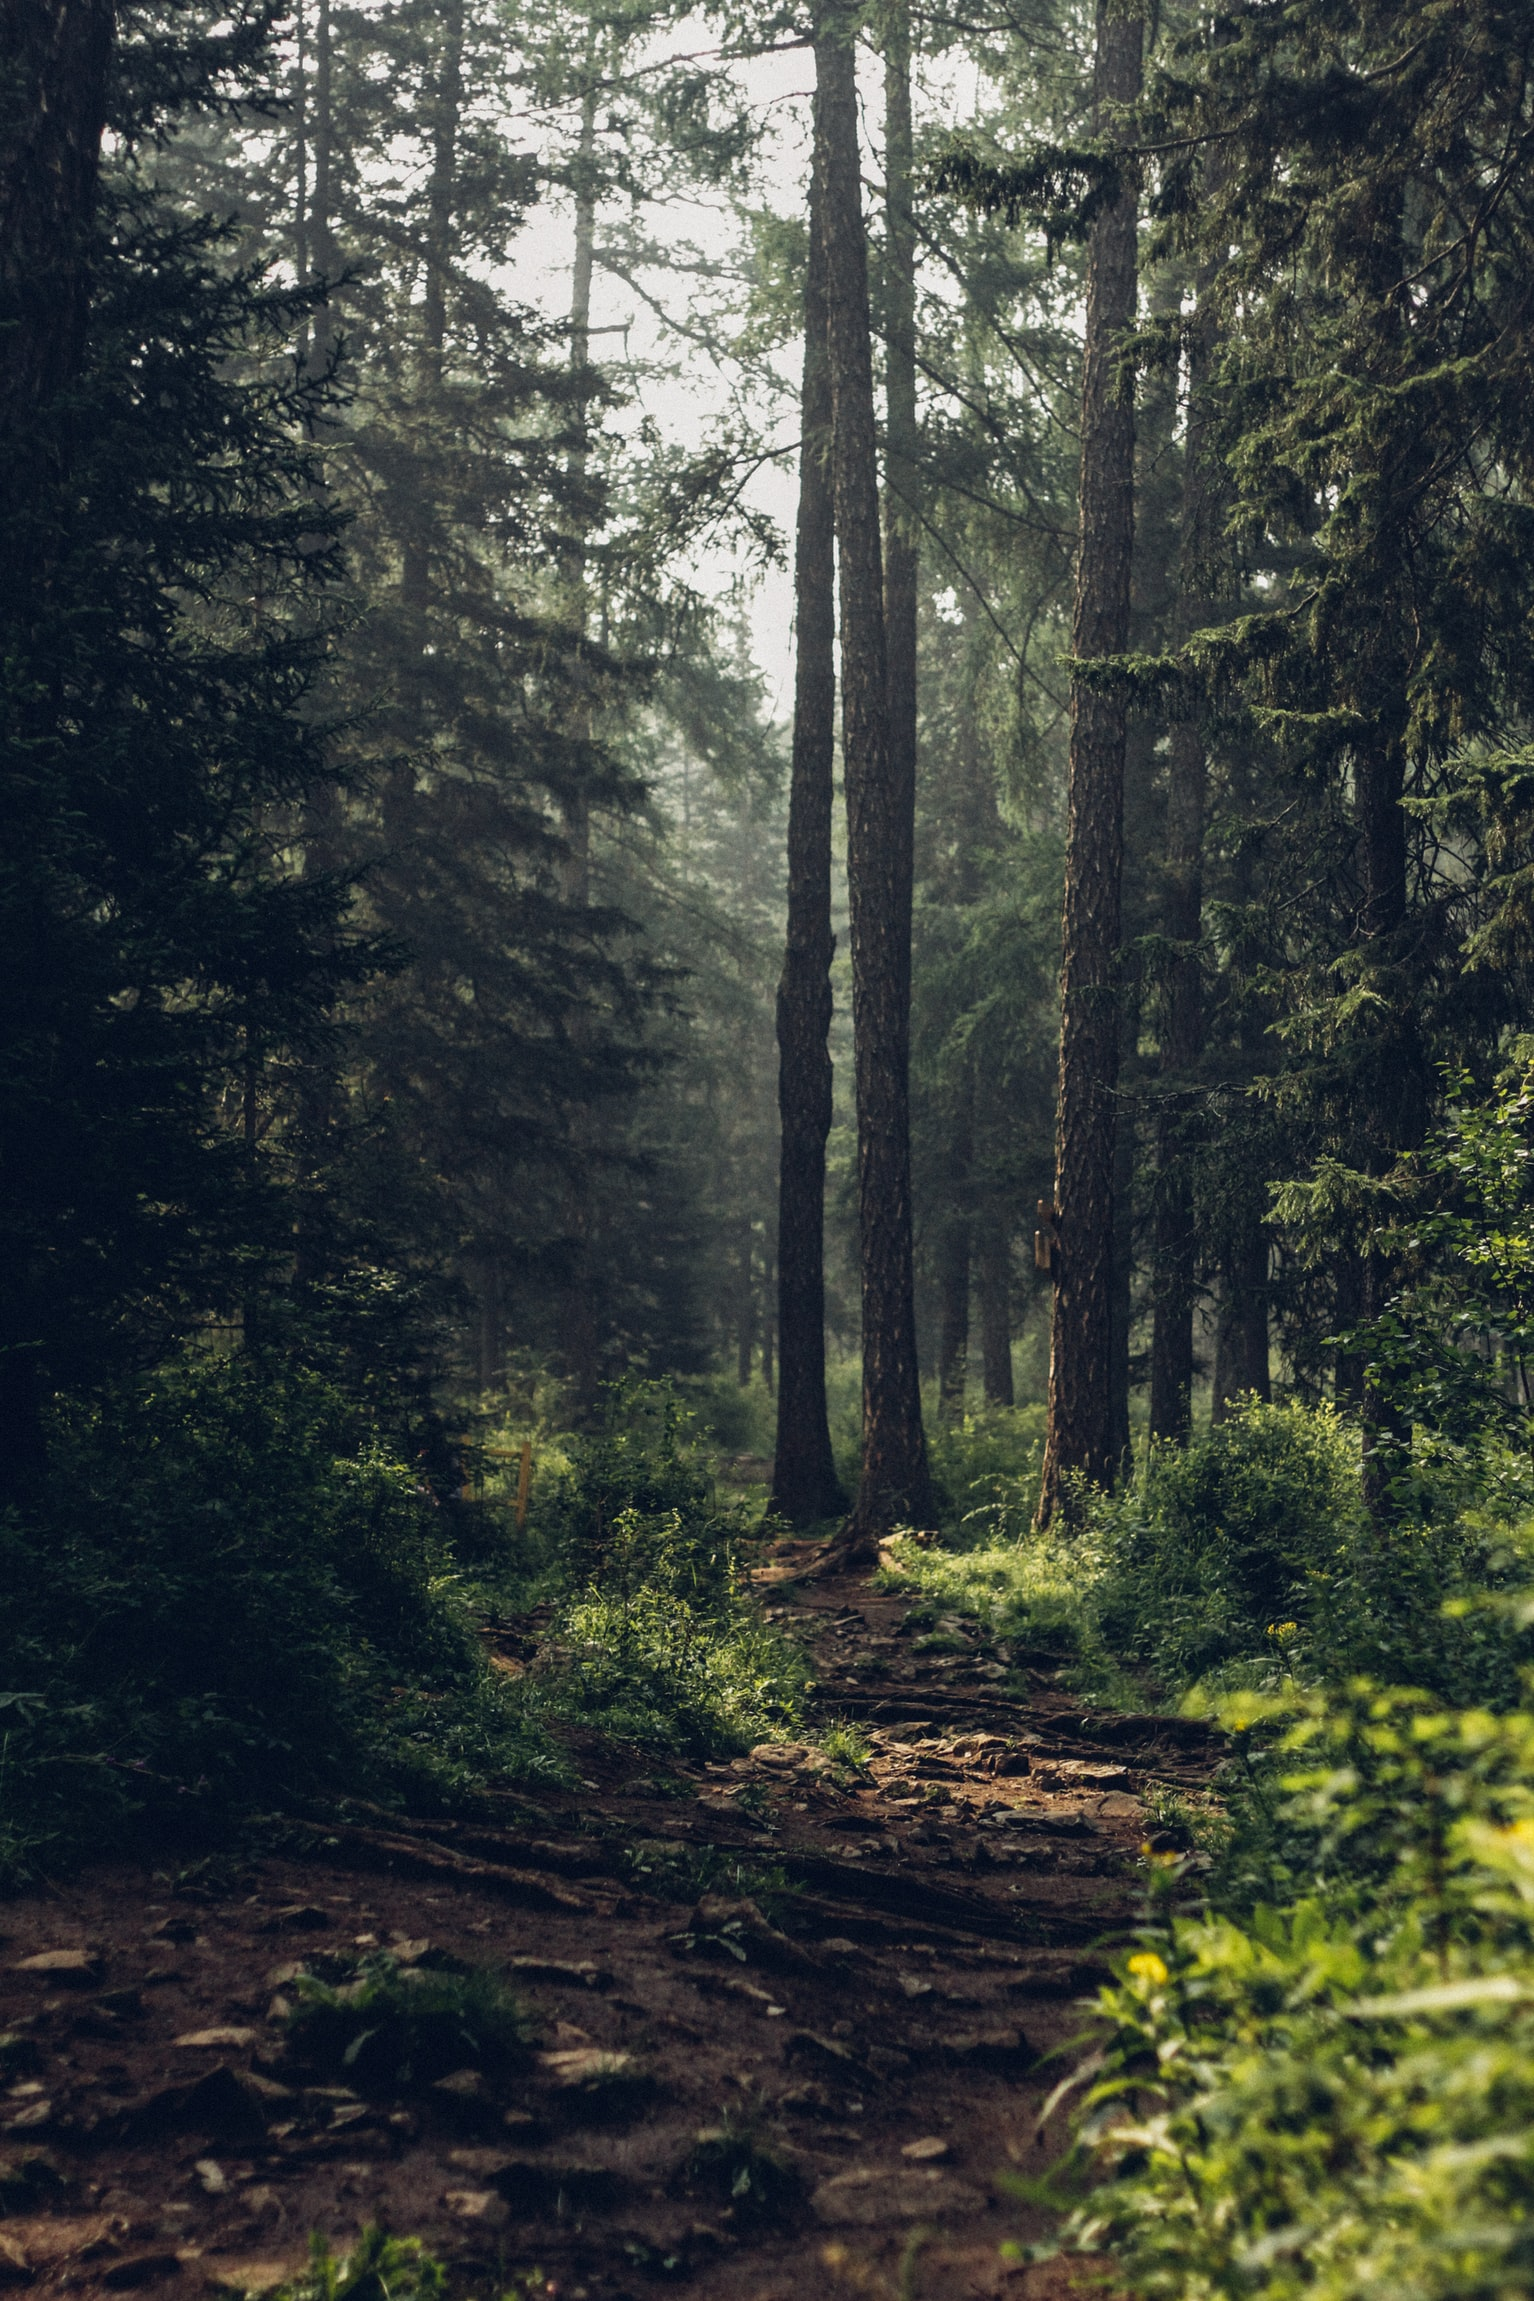 4 Small Changes You Can Make to Battle Deforestation